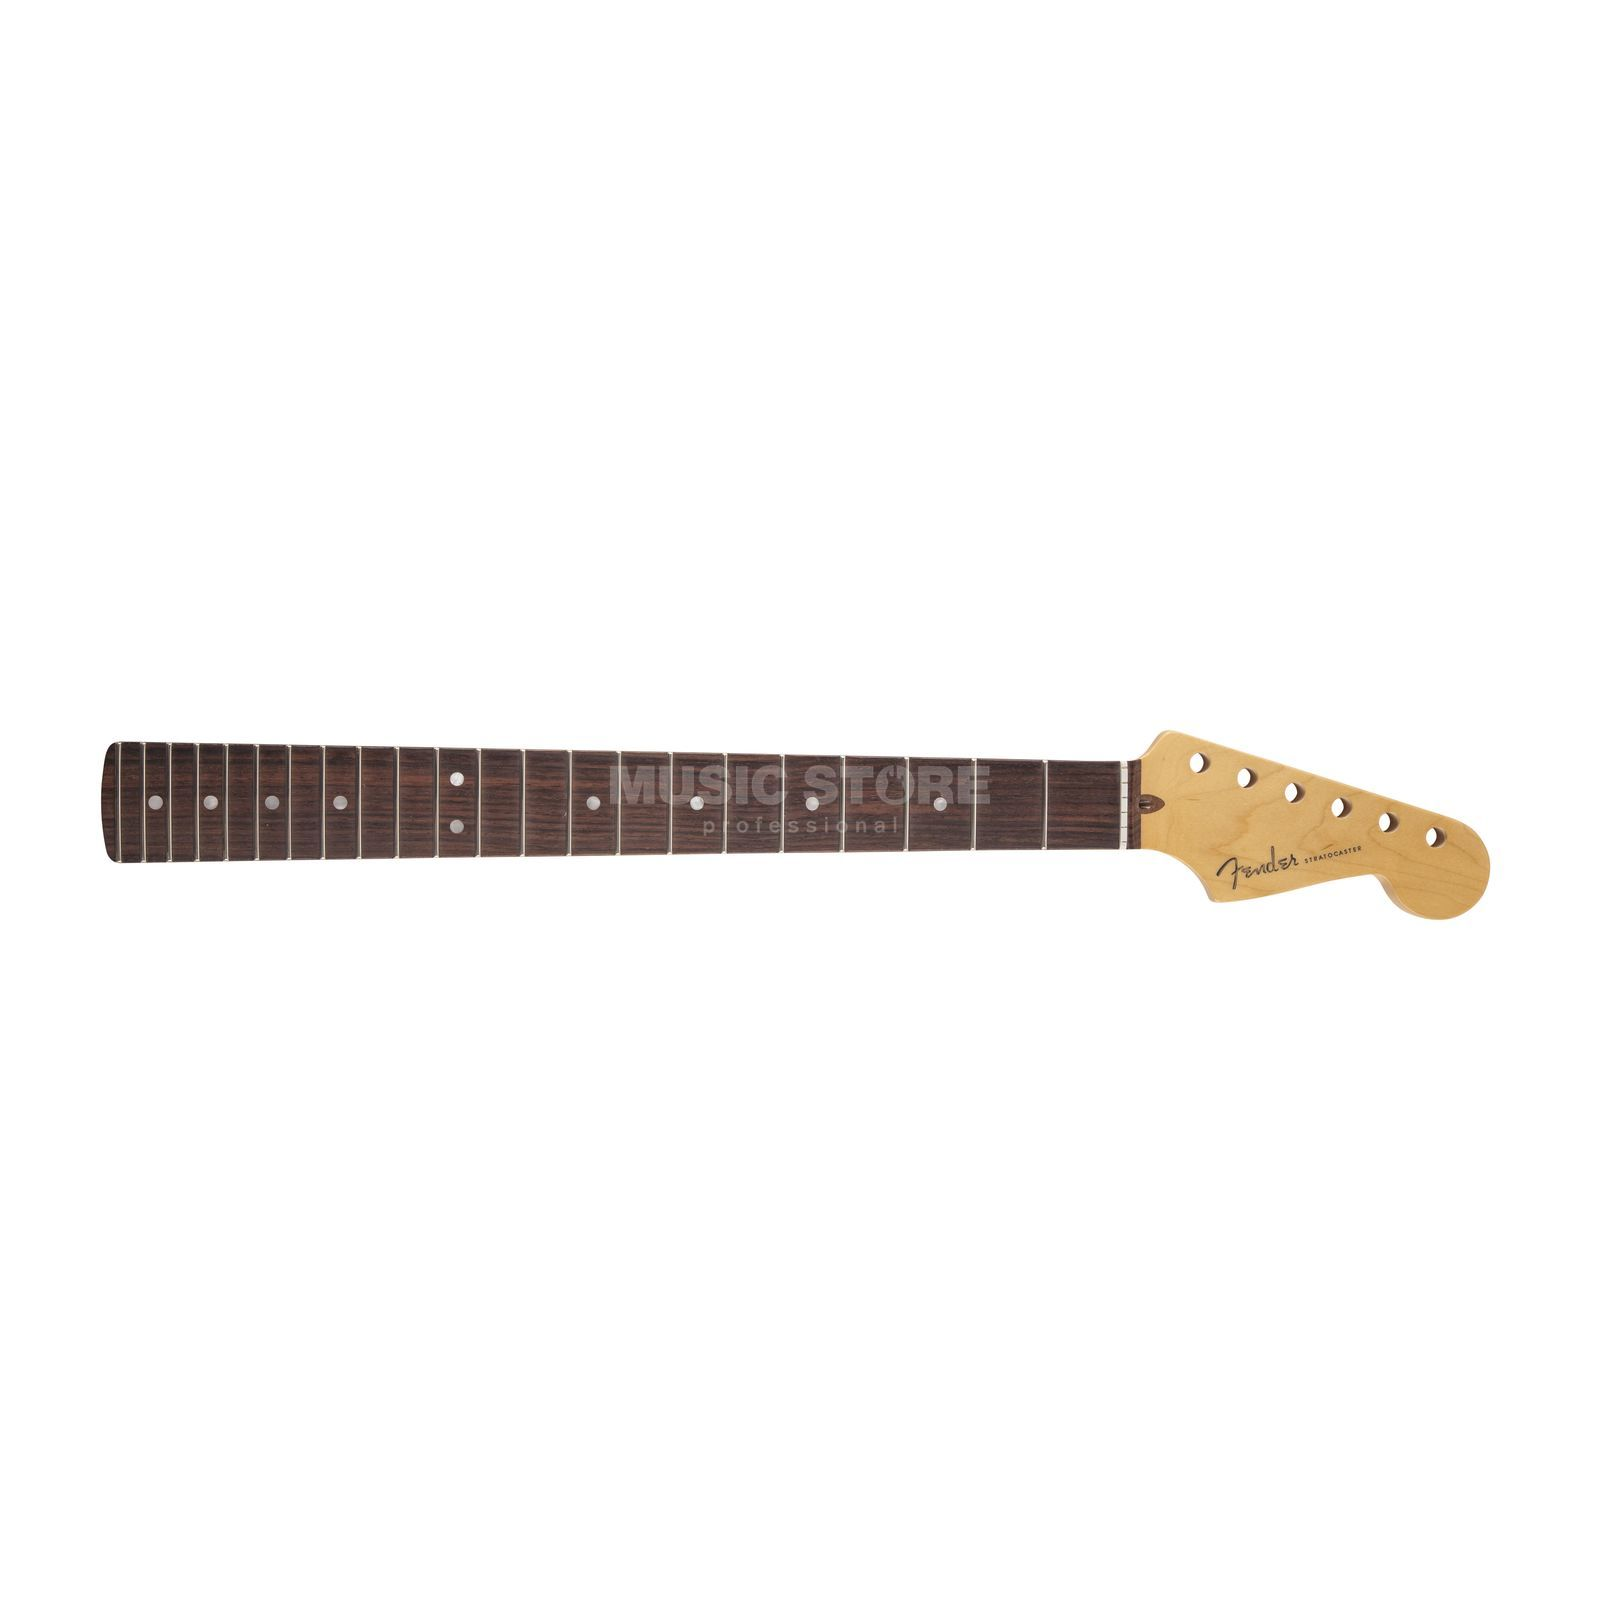 Fender USA Strat Neck 22 Frets RW Compound Radius Produktbillede